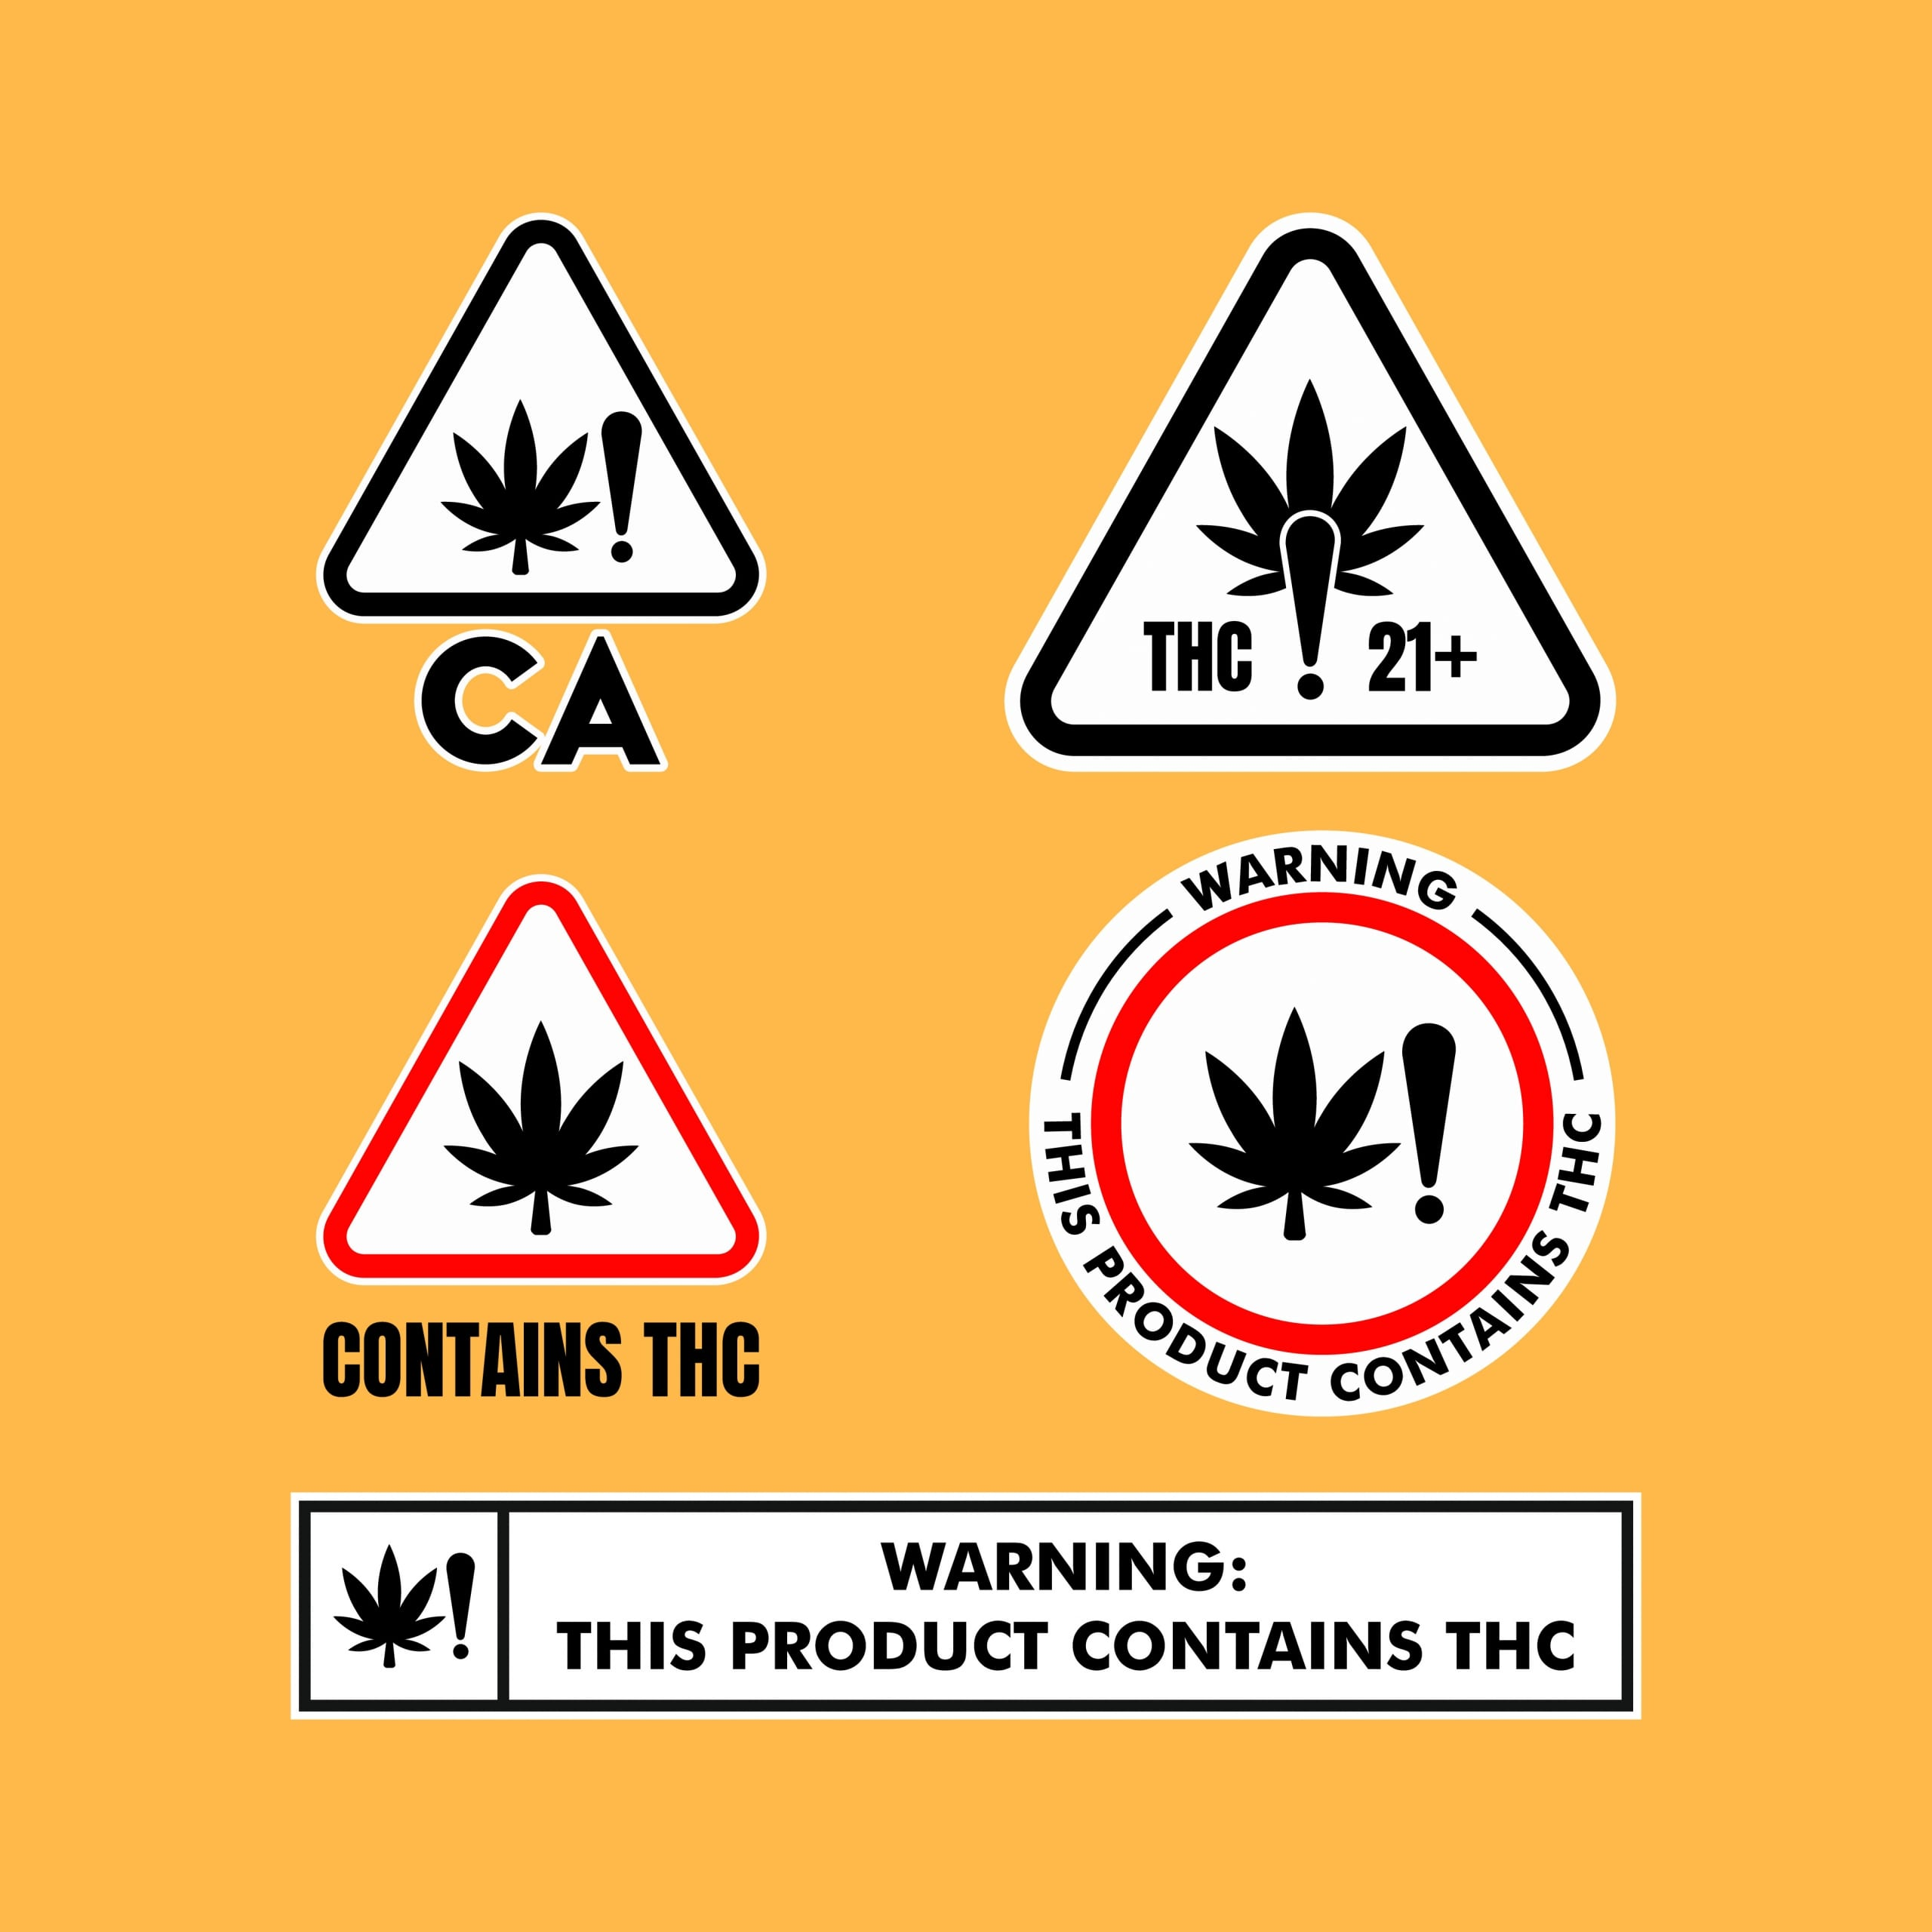 Cannabis Packaging Child-Safety Tips